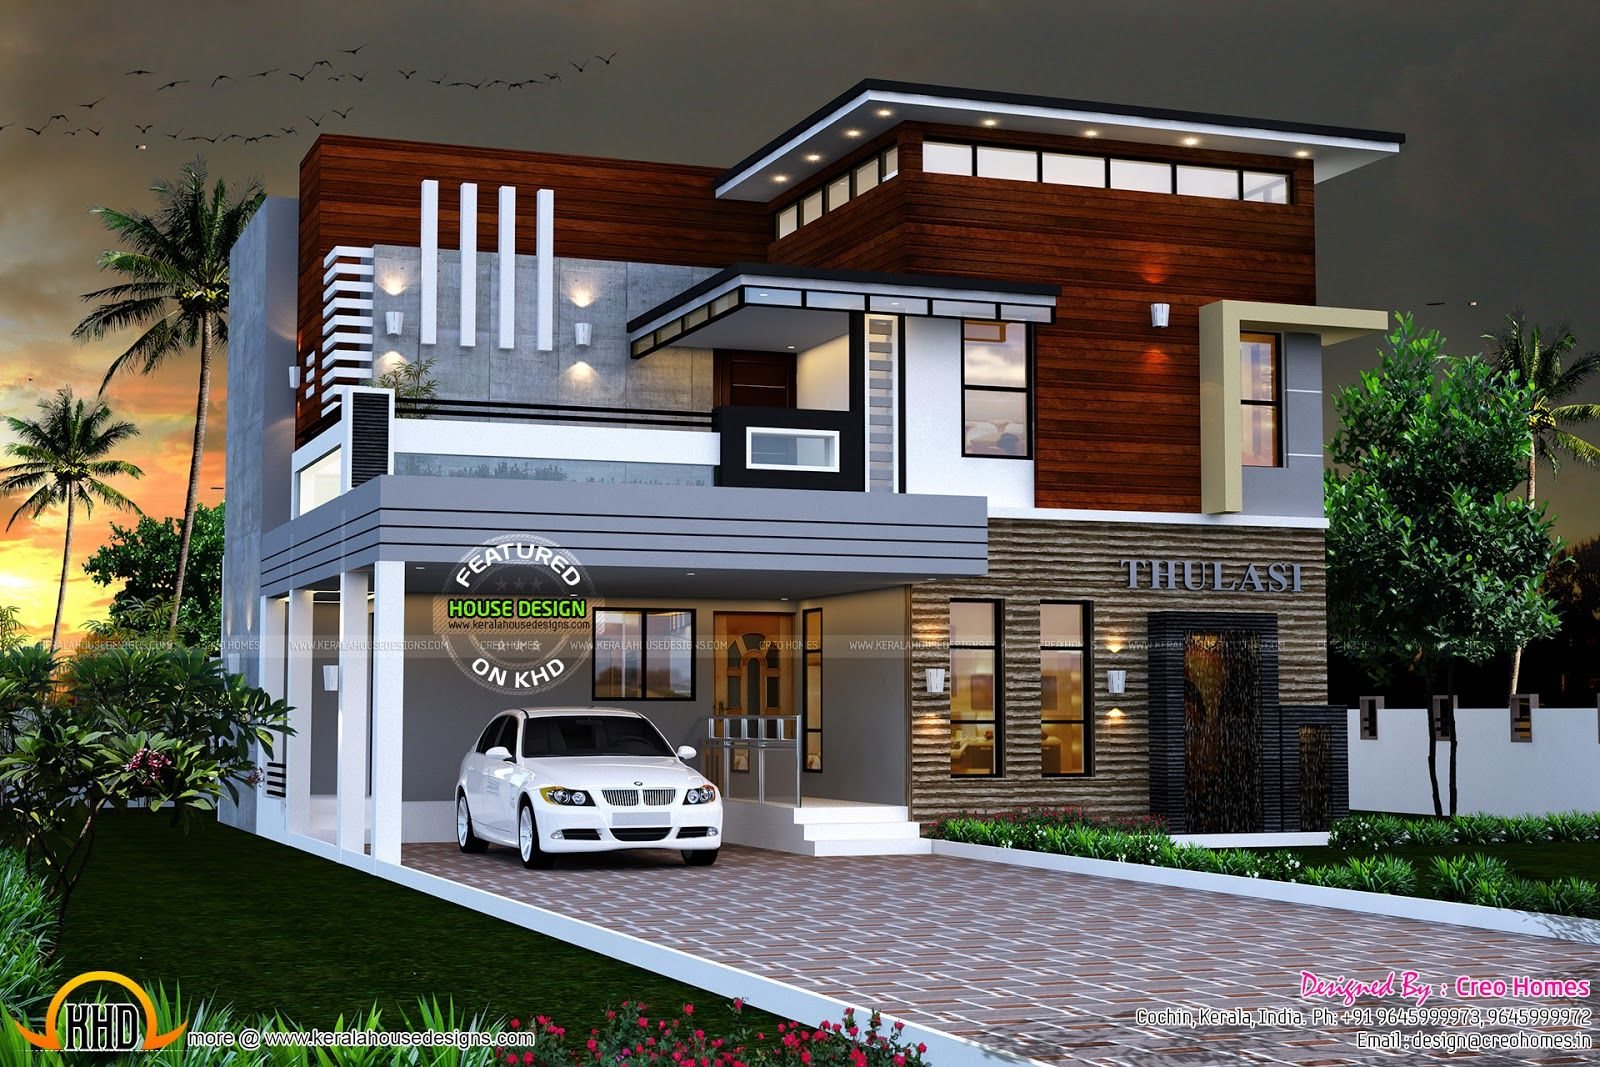 Eterior design modern small house architecture building New construction home plans